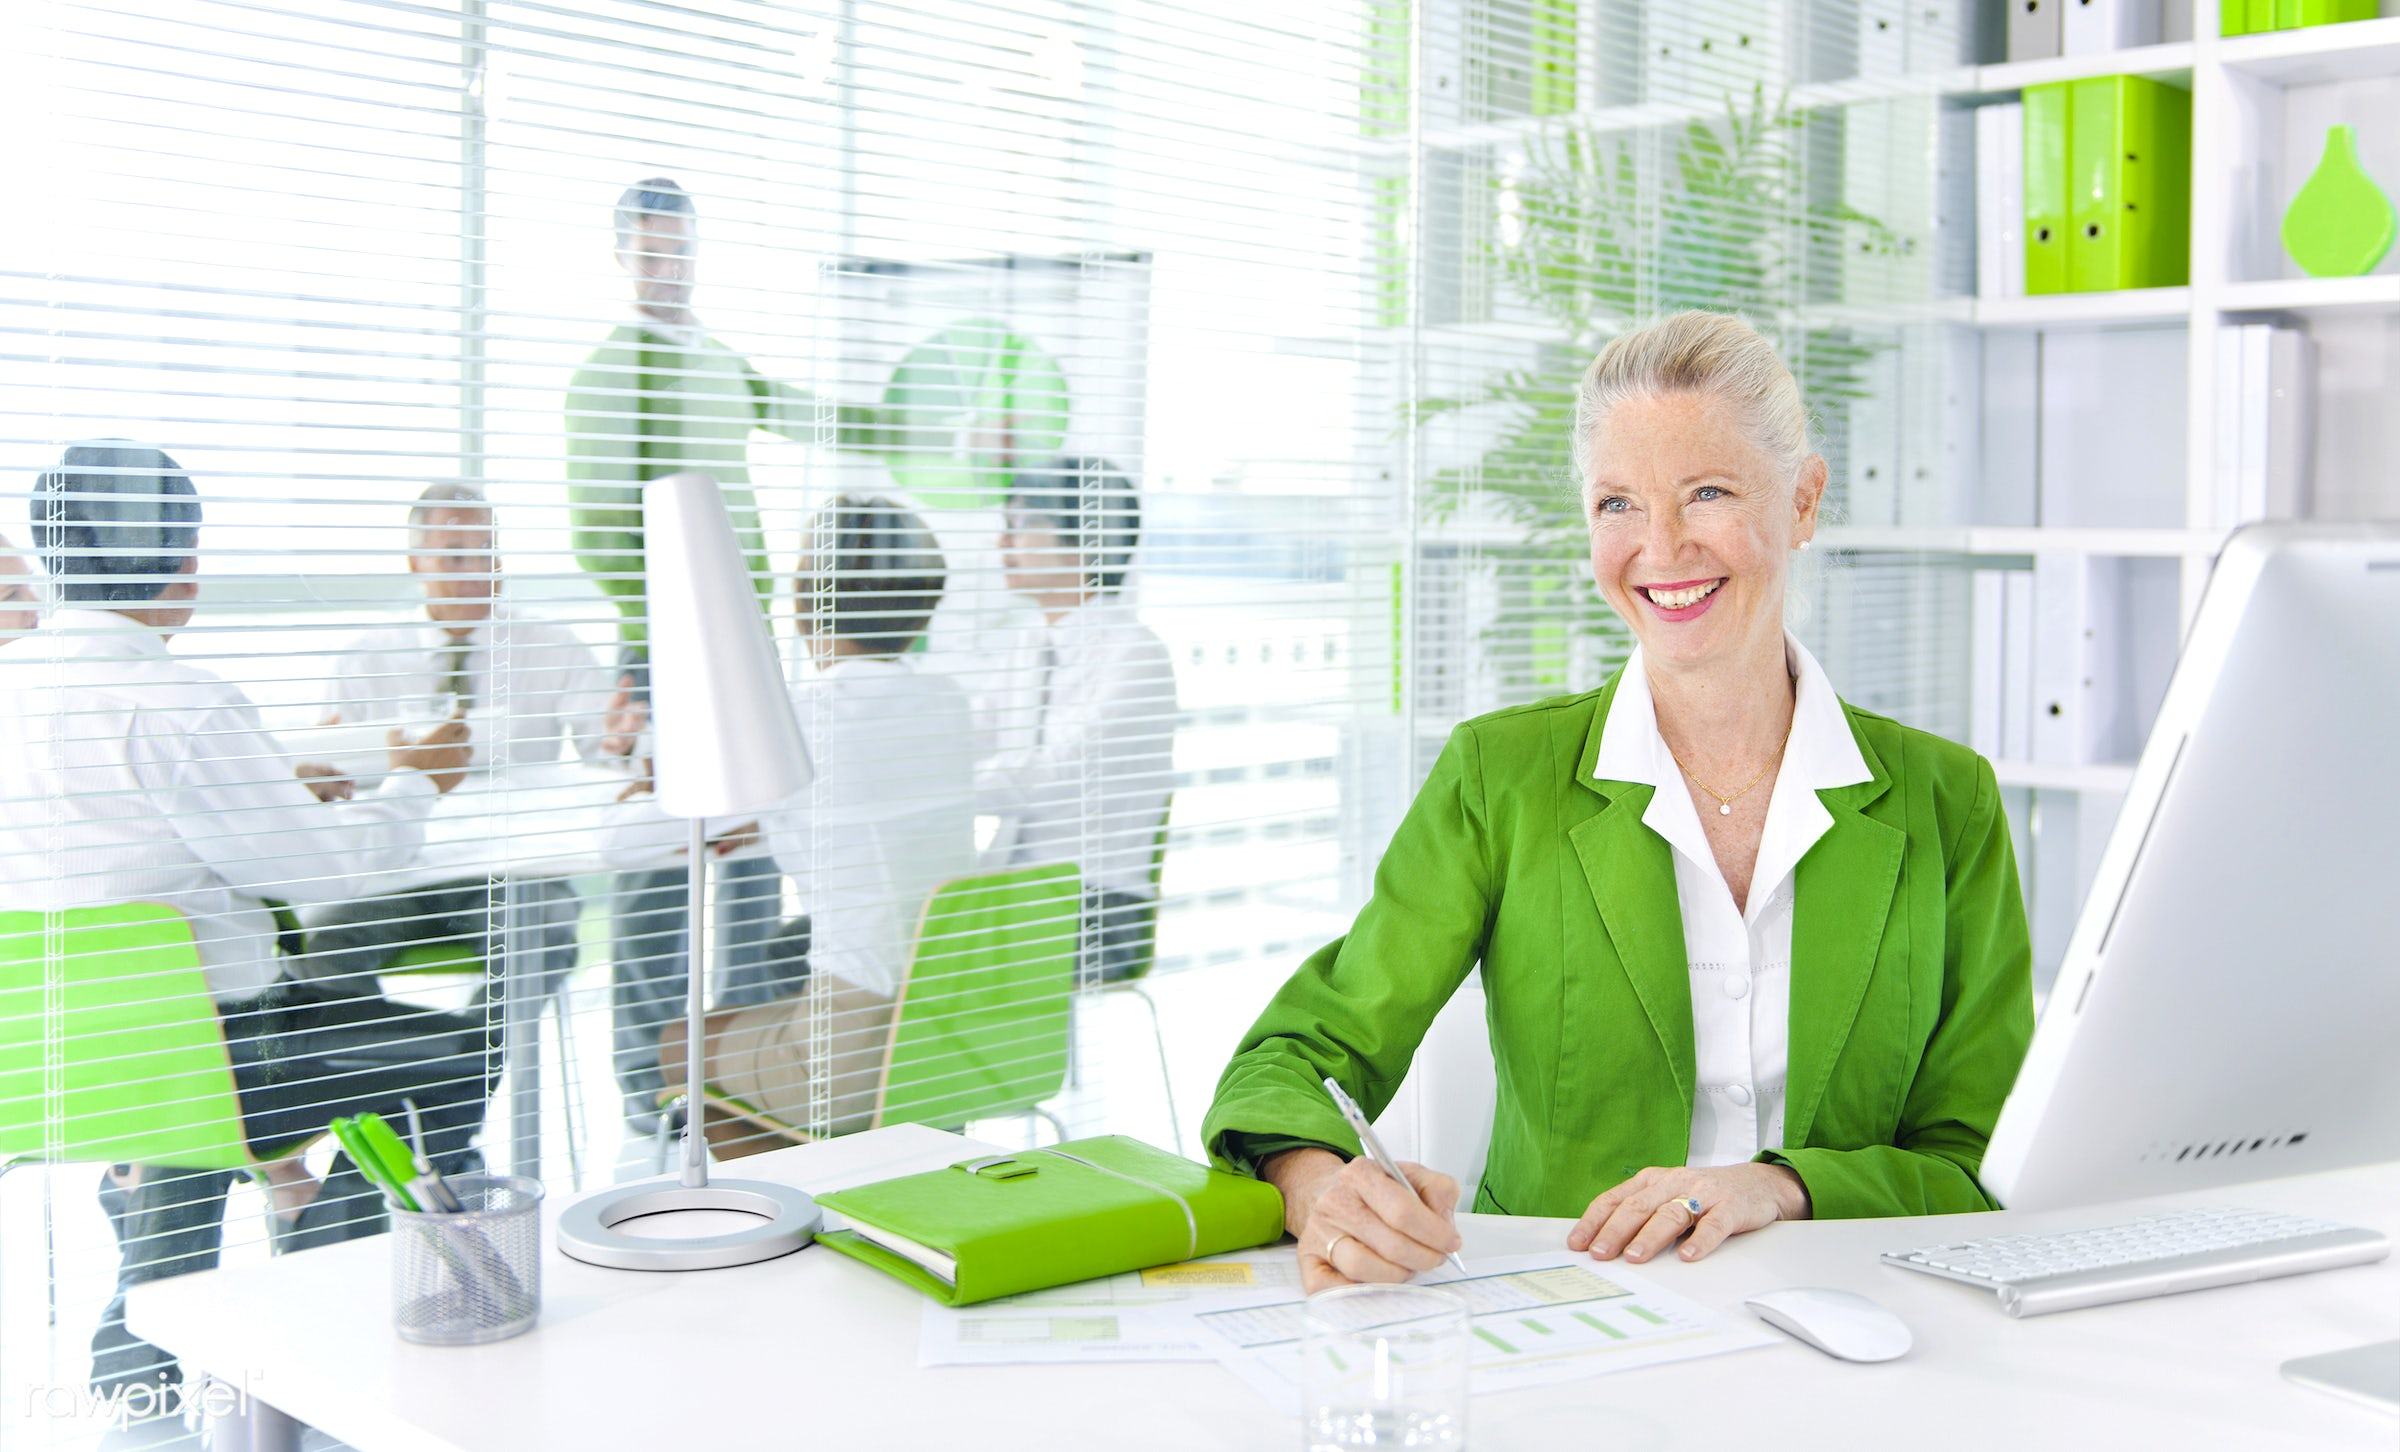 Business people working in a green office - ceo, adult, african descent, asian ethnicity, brainstorming, business, business...